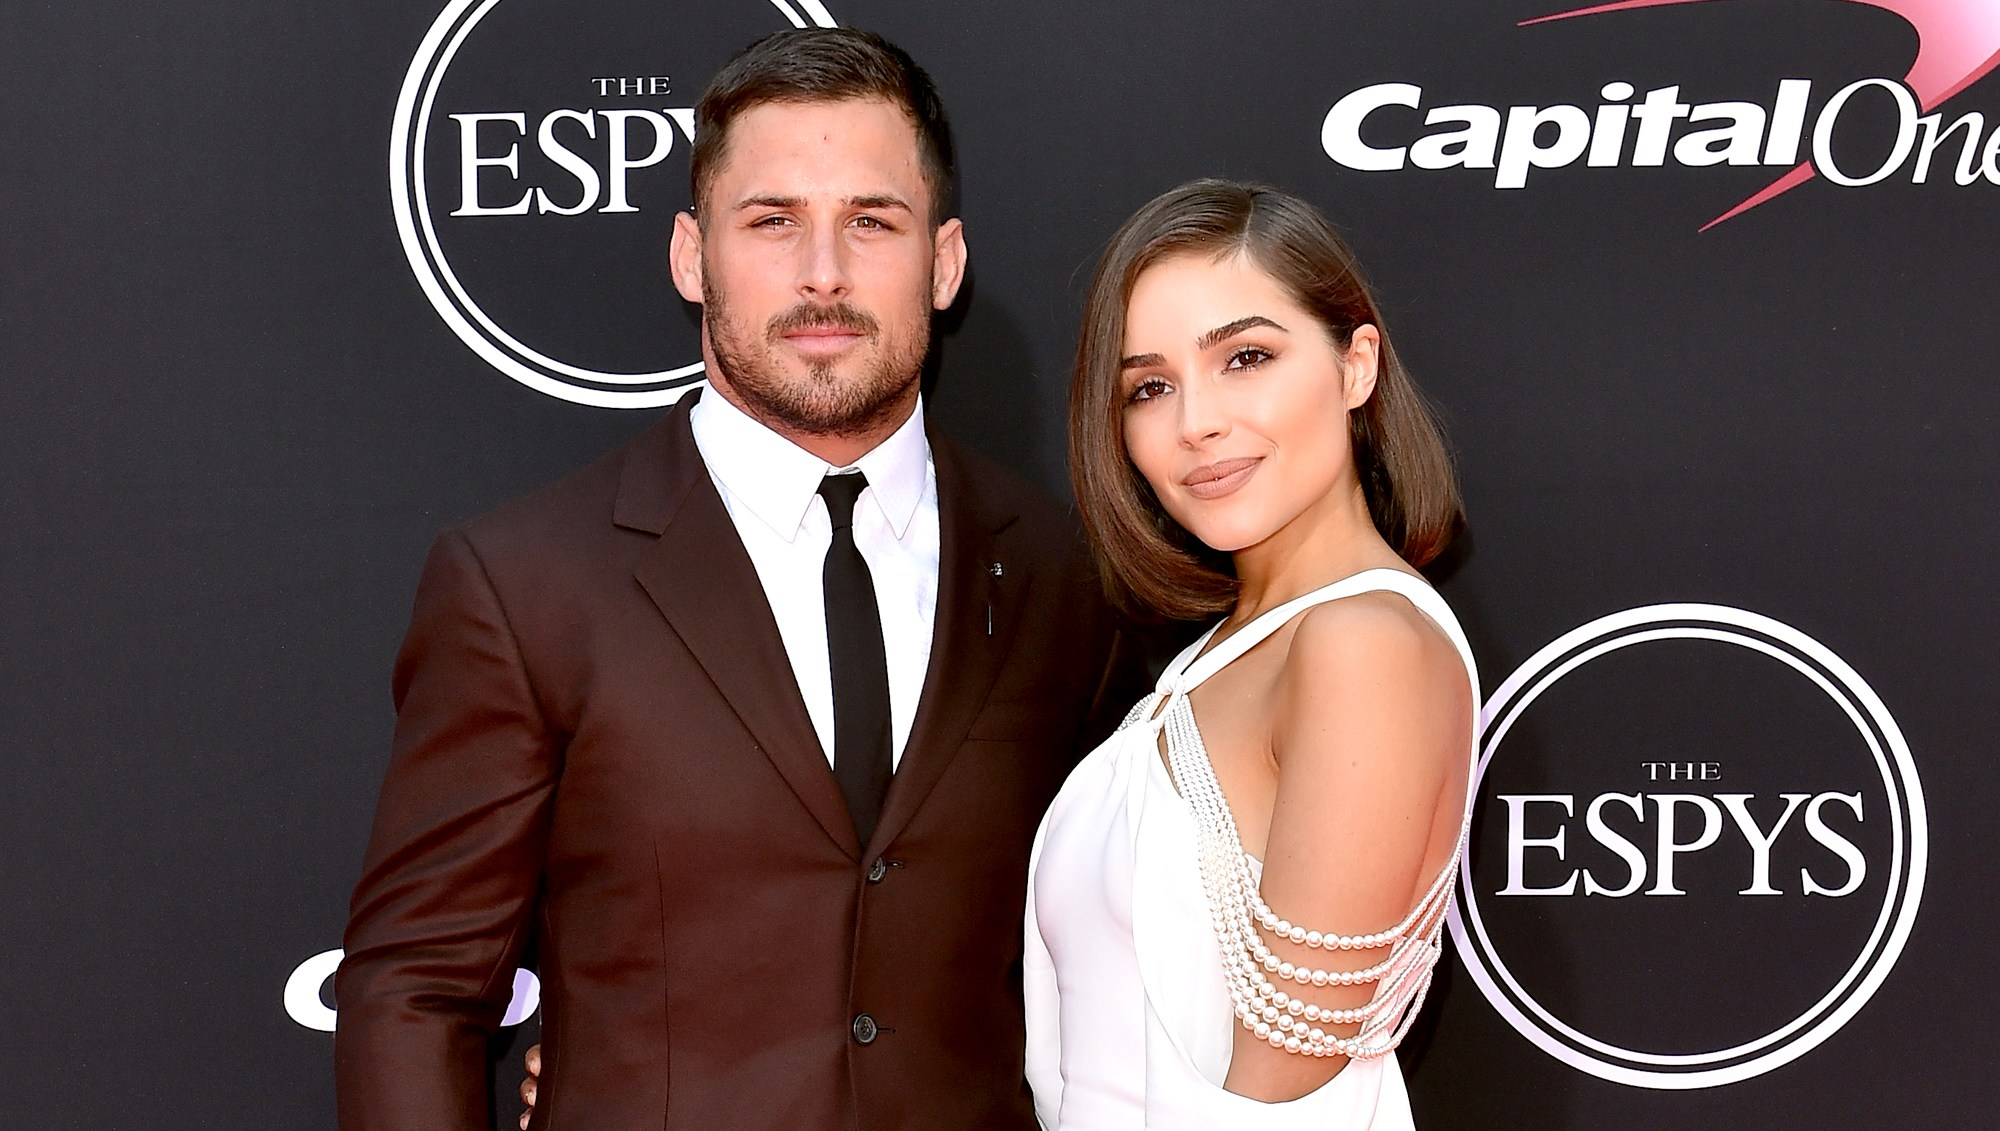 Danny Amendola Slams Ex Olivia Culpo, Says the Sex Was 'Crazy': She 'Wants to Be Noticed on the Internet'